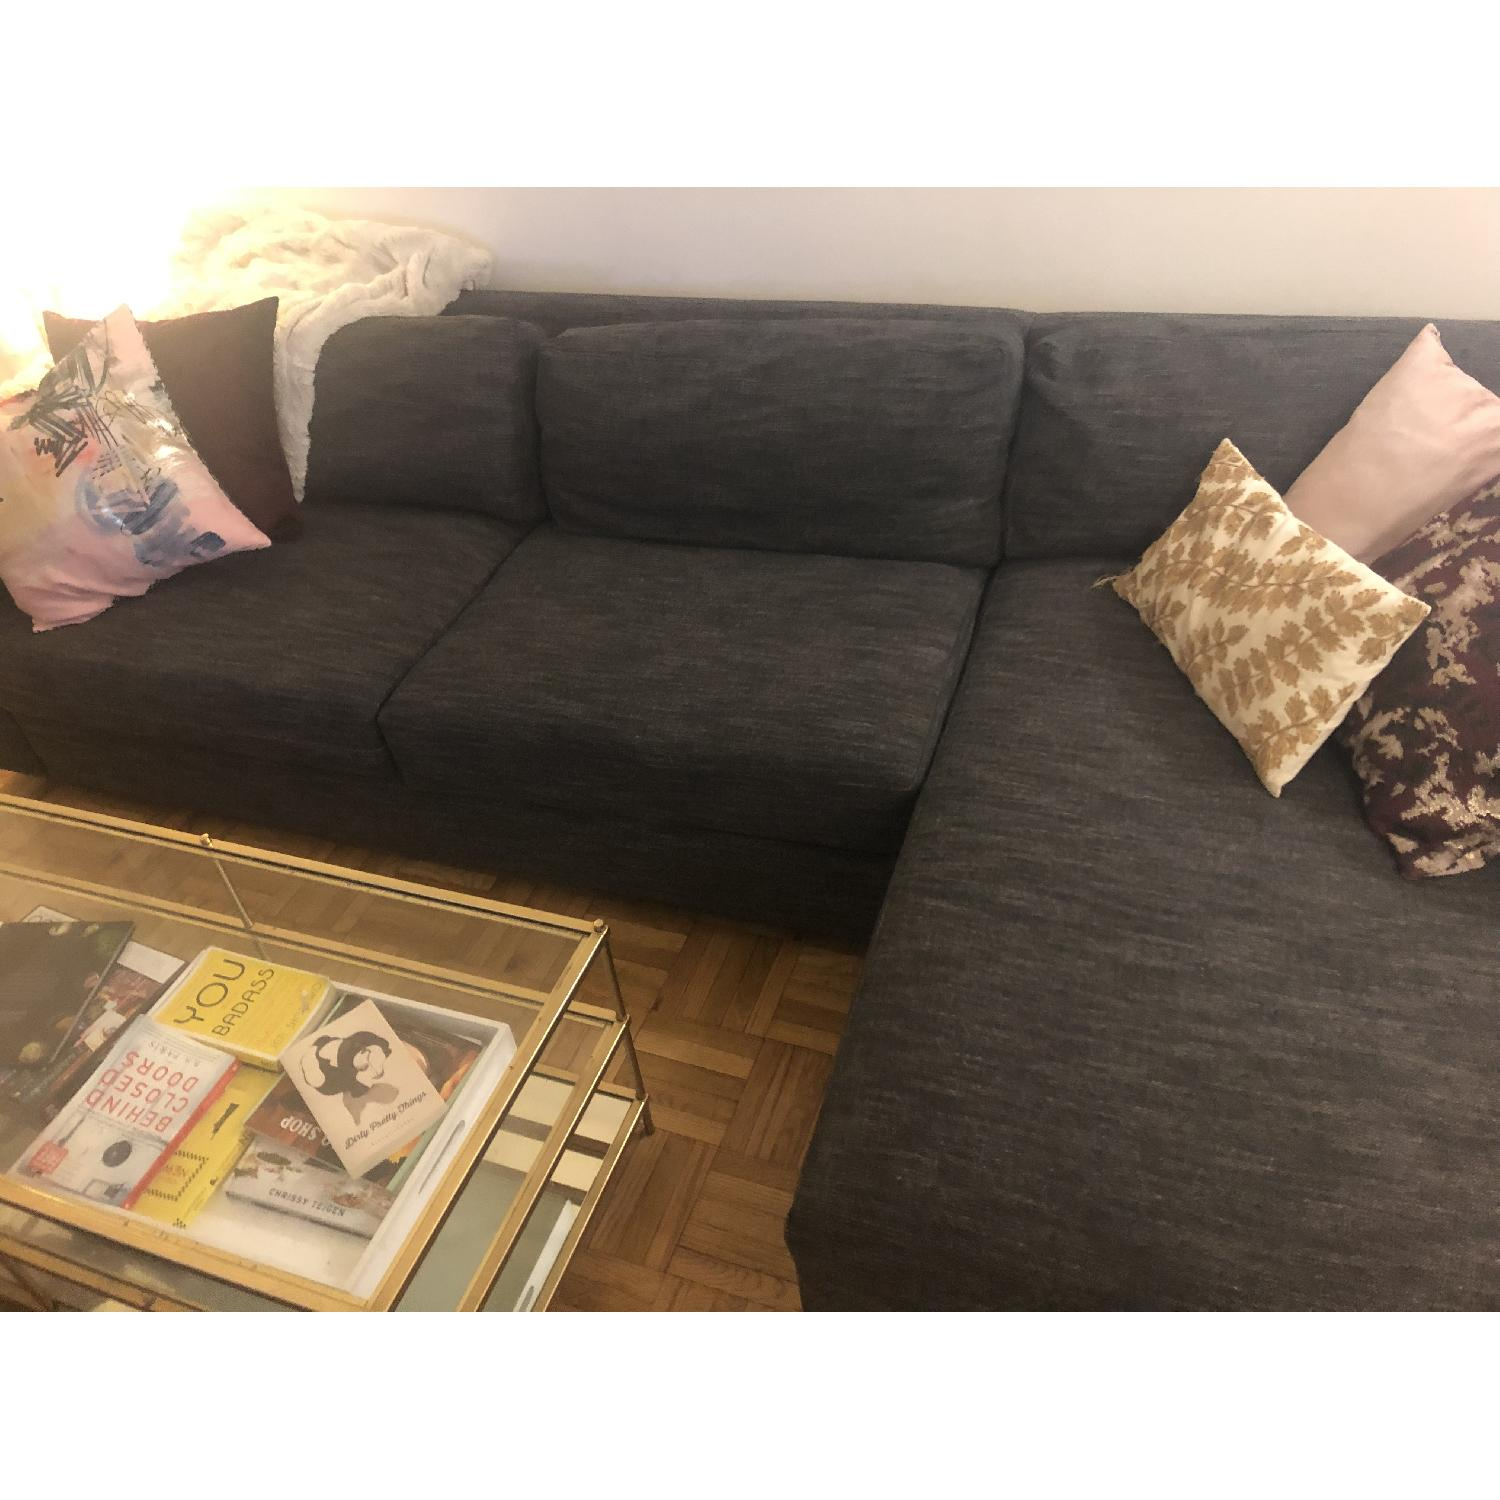 West Elm Urban 2 Piece Large Sectional in Heathered Tweed - image-4